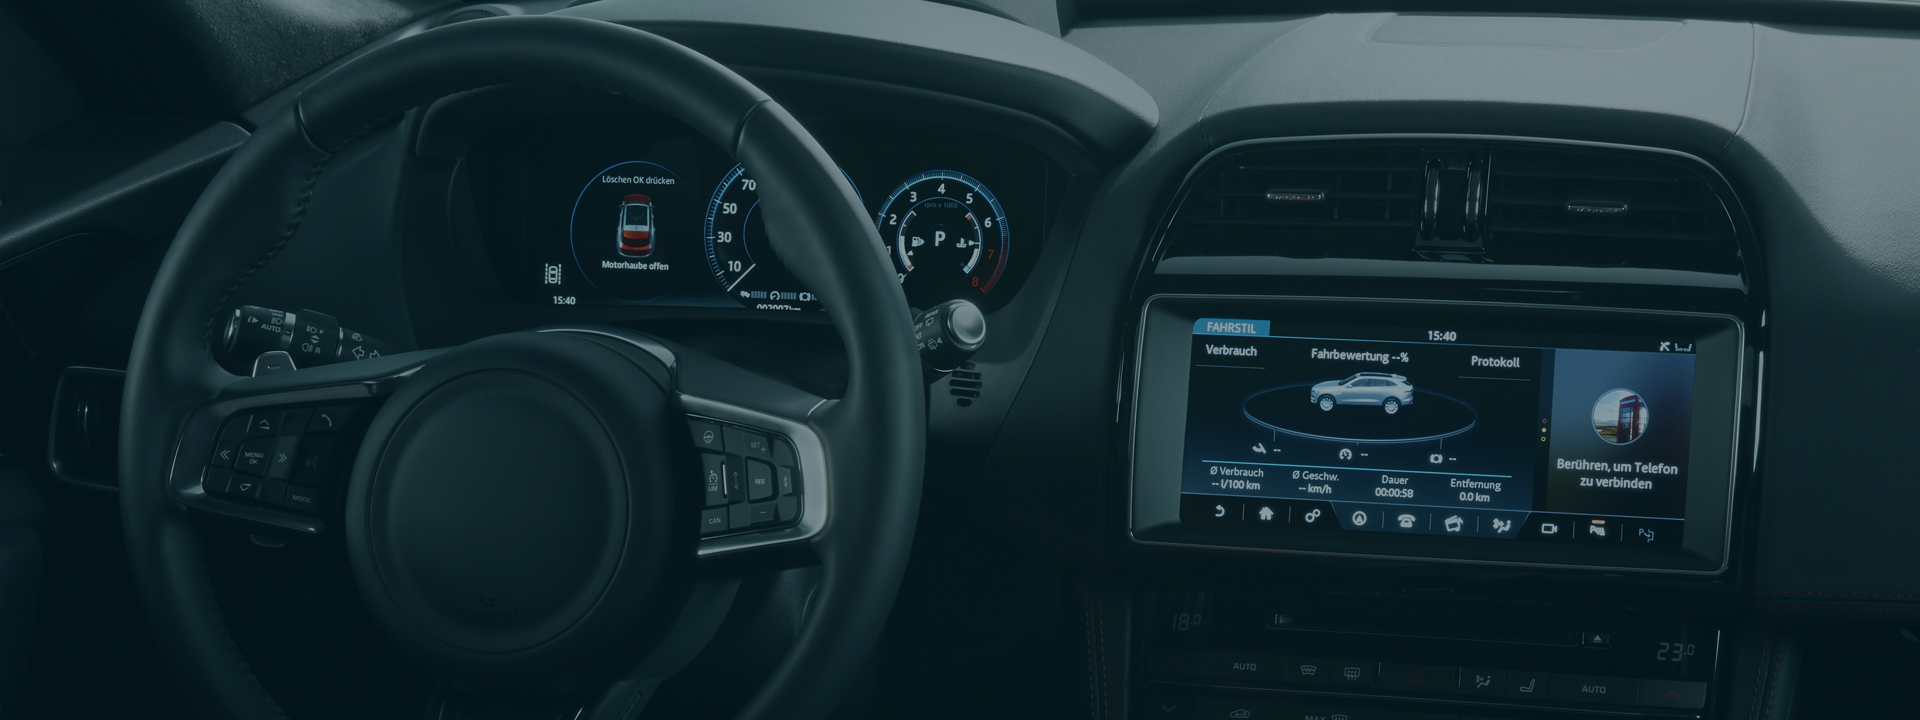 company-car-interior-display-cluster